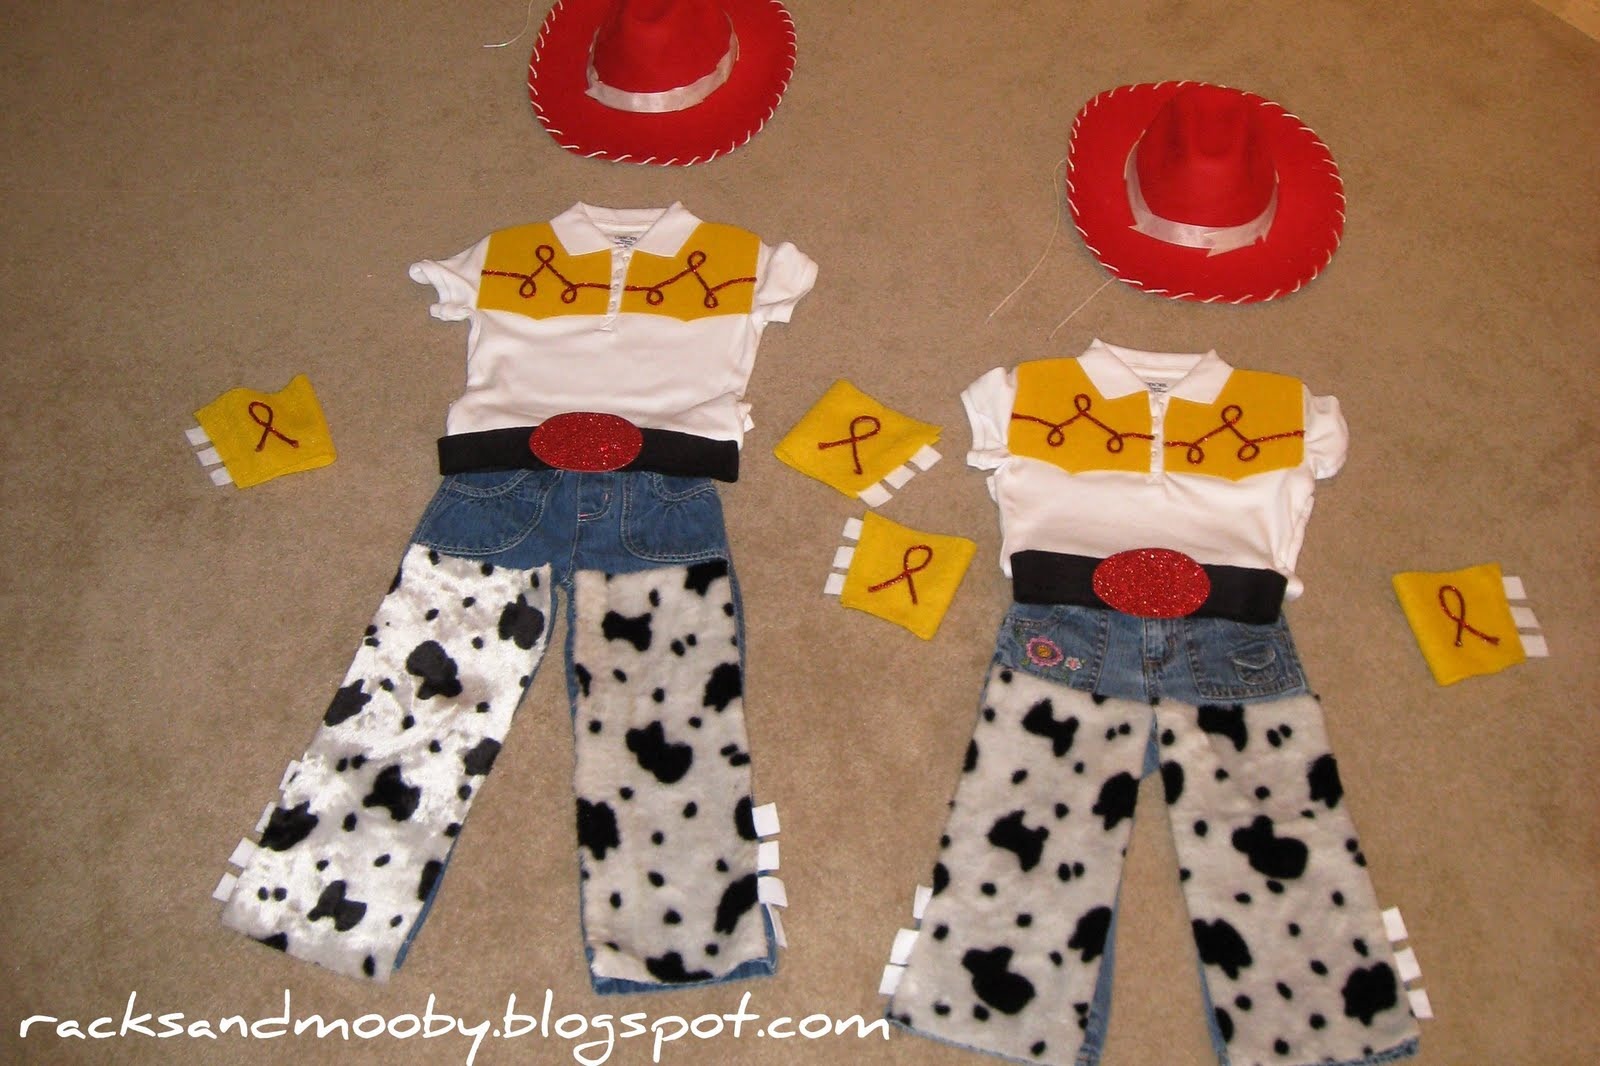 Racks and mooby diy jessie toy story toddler costume no sewing diy jessie toy story toddler costume no sewing solutioingenieria Images